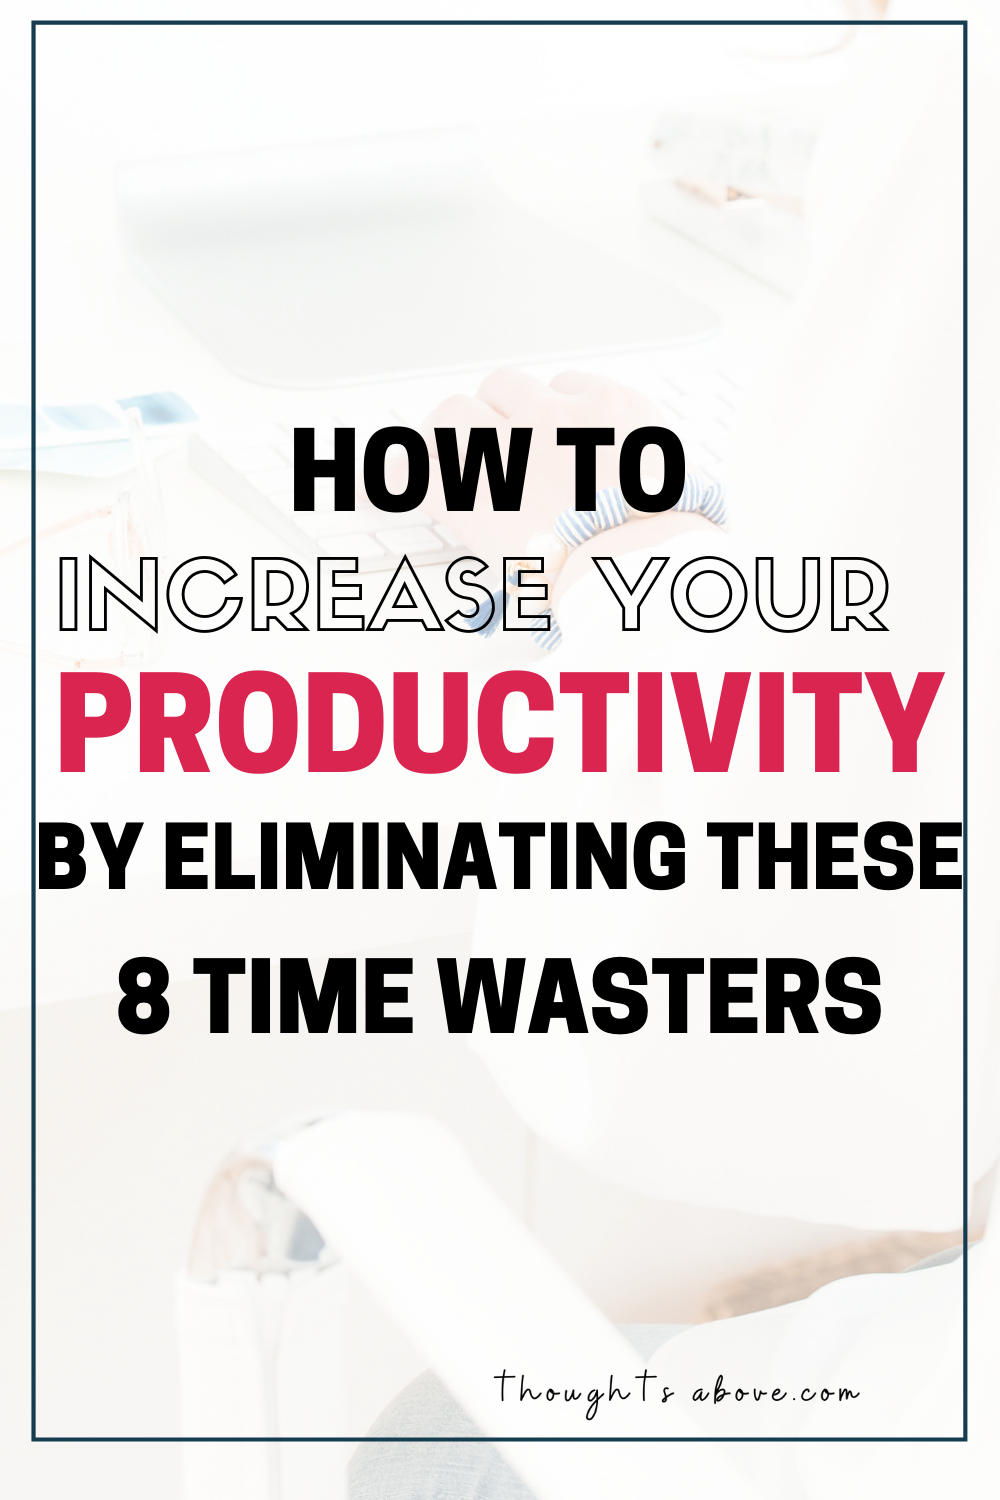 If you're struggling with time management at work And Wondering how to improve your productivity start by learning 8 things that steal your time silently. time management Tips will help you start getting things done for once. #productivity #timemanagement #personaldevelopment #personalGrowth #SelfImprovement #SelfHelp #procrastination #Success #GoalSetting #Motivation #millennial #productive #productivitytips #motivation #timemanagement #procrastination #GoalSetting #successfulwomen #careertips